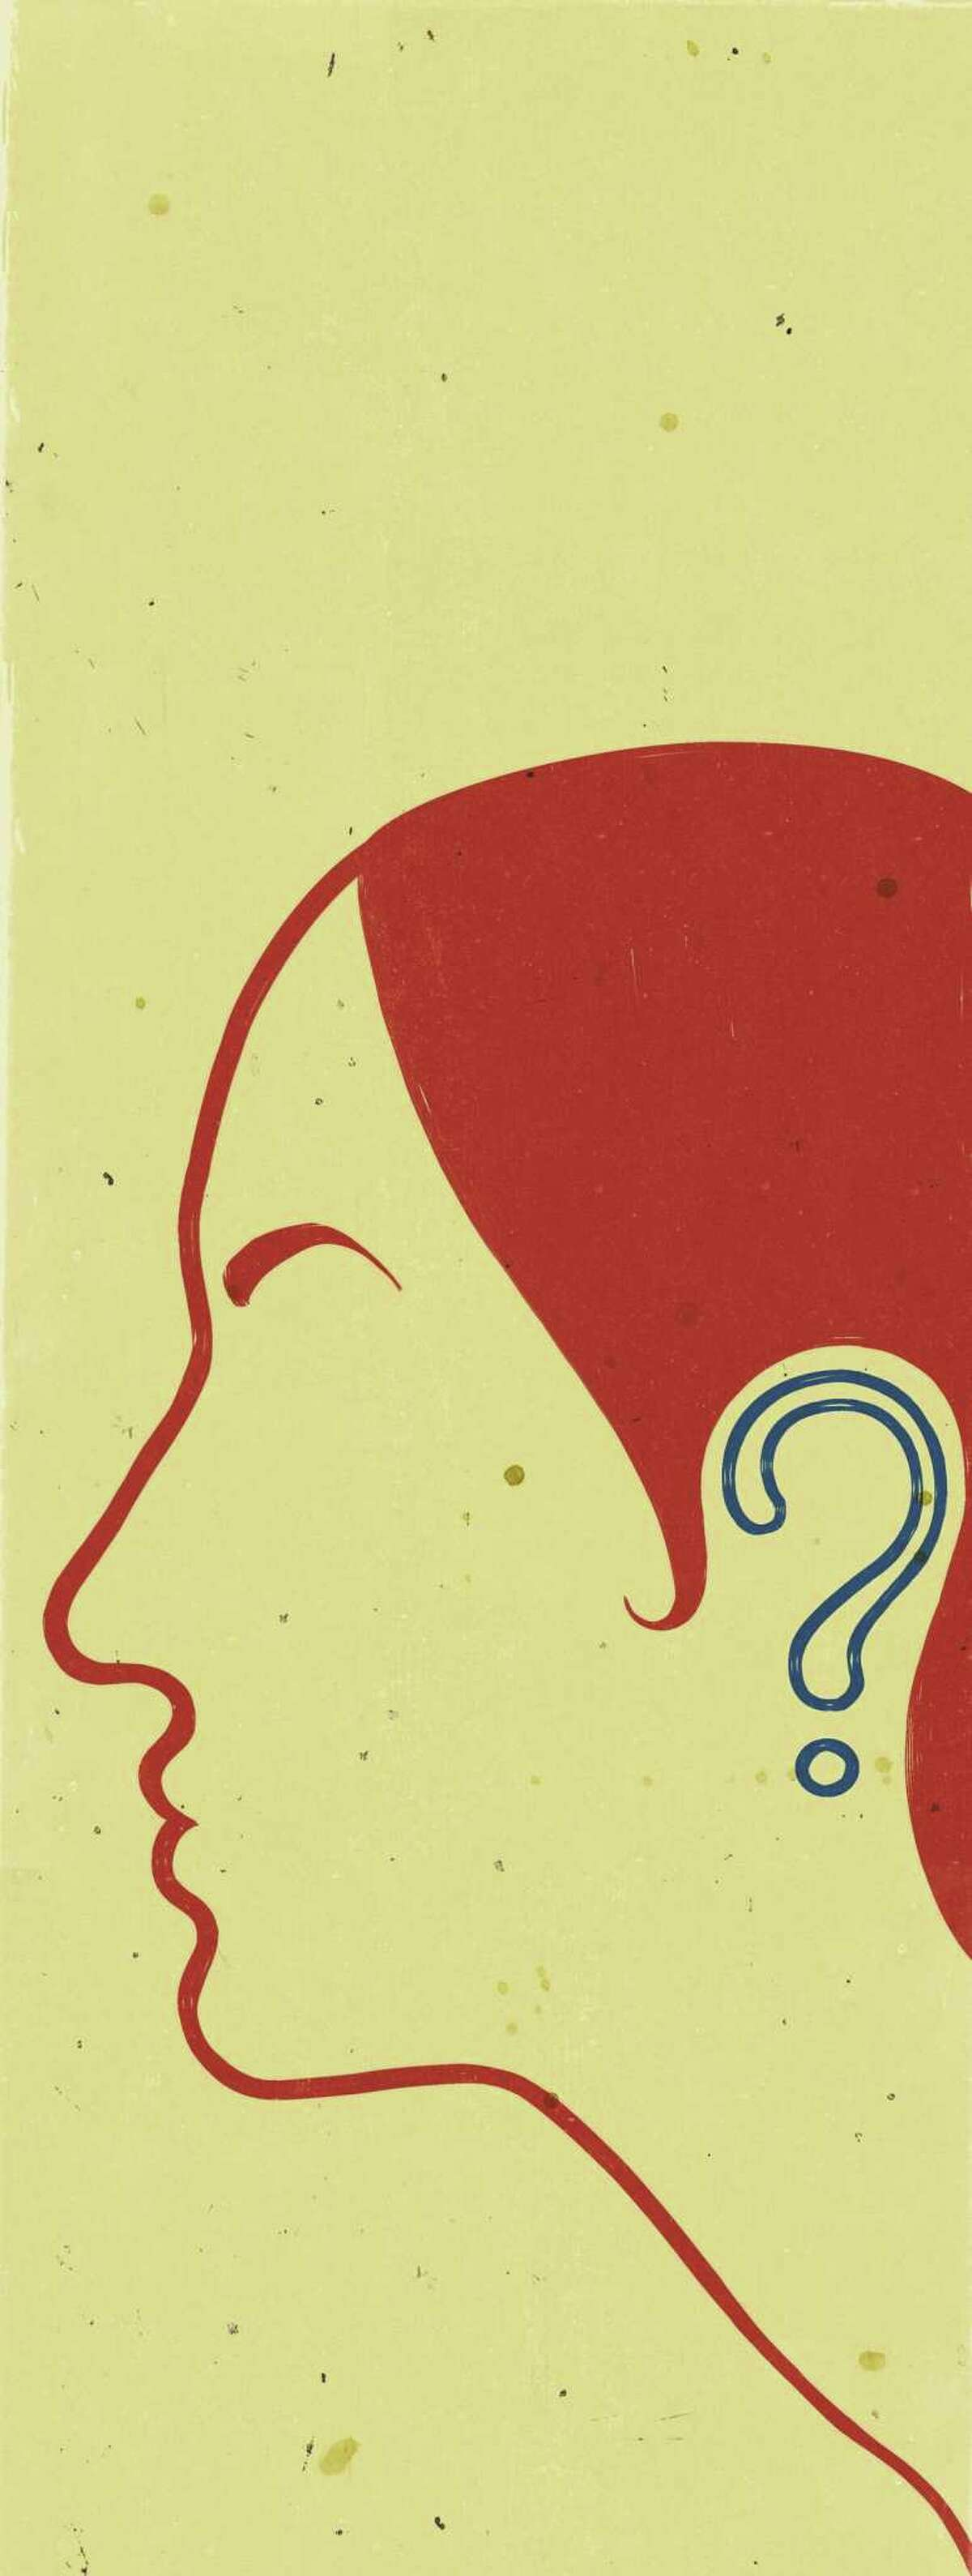 Freelance illustration for 7/9/06 Book Review assigned by Rico to Shout (aka Alessandro Gottardo) for a book titled